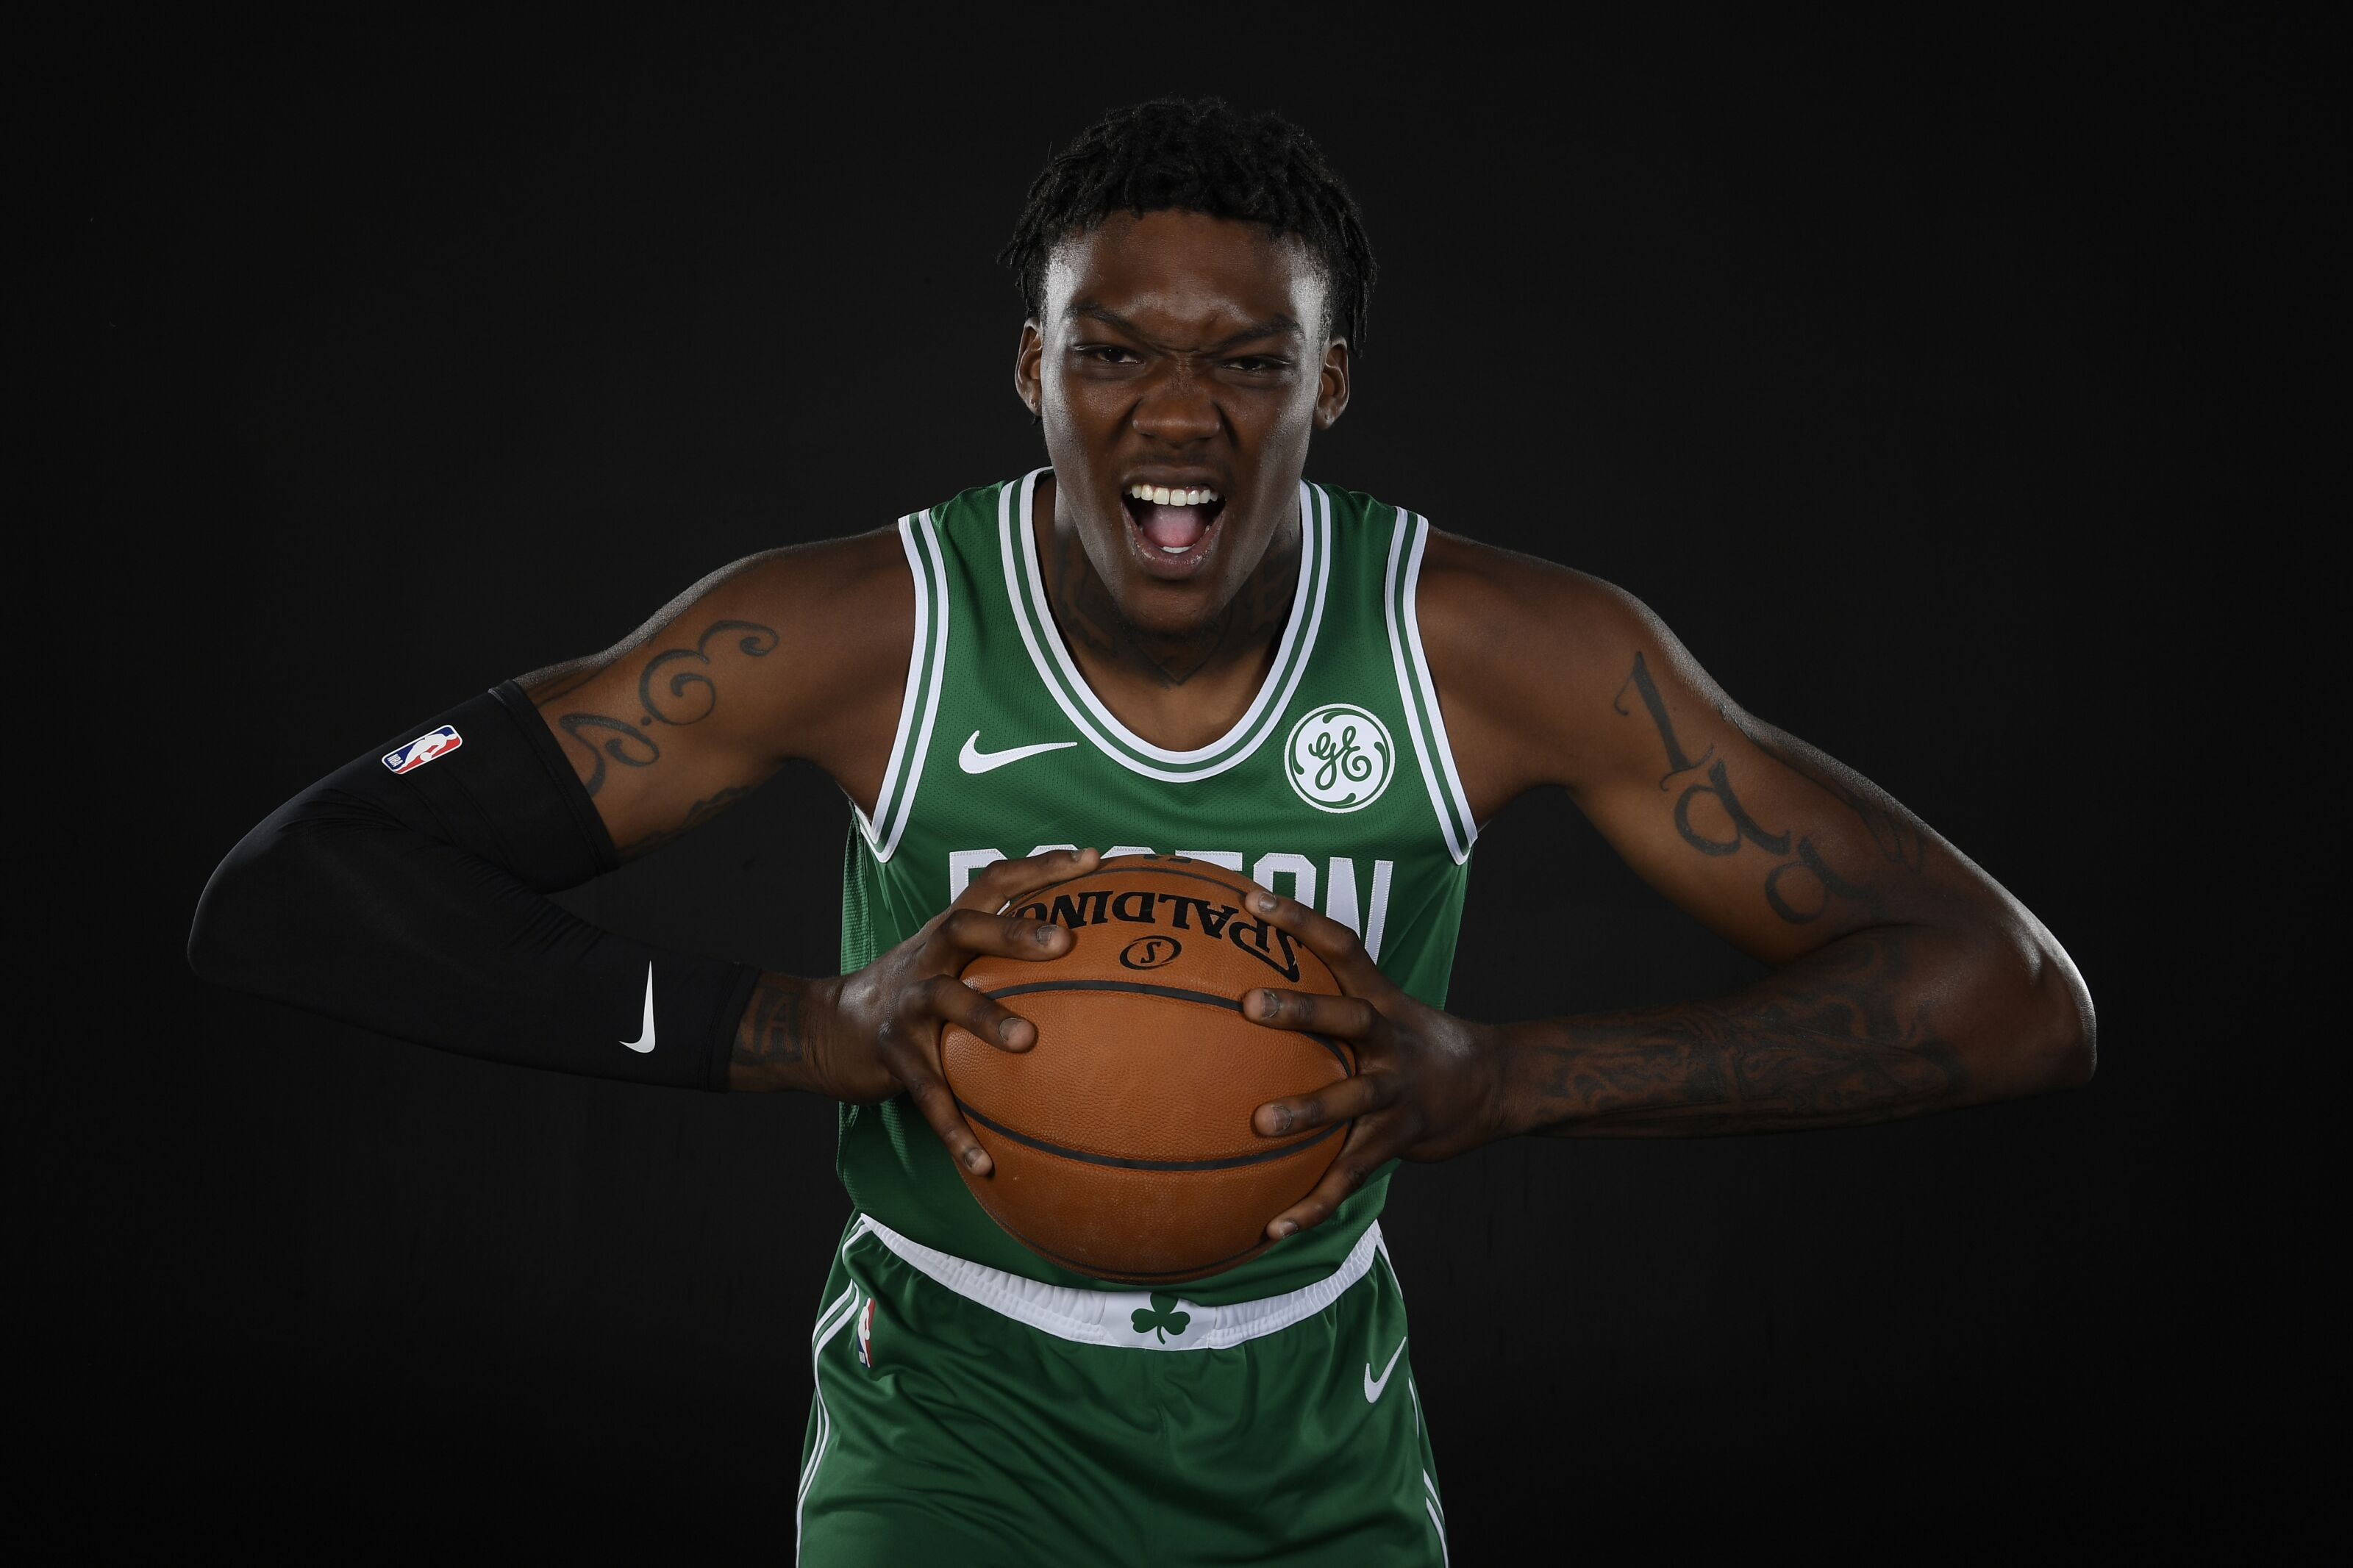 Boston Celtics: Robert Williams gearing up for 'Most Improved Player' in 2019-20